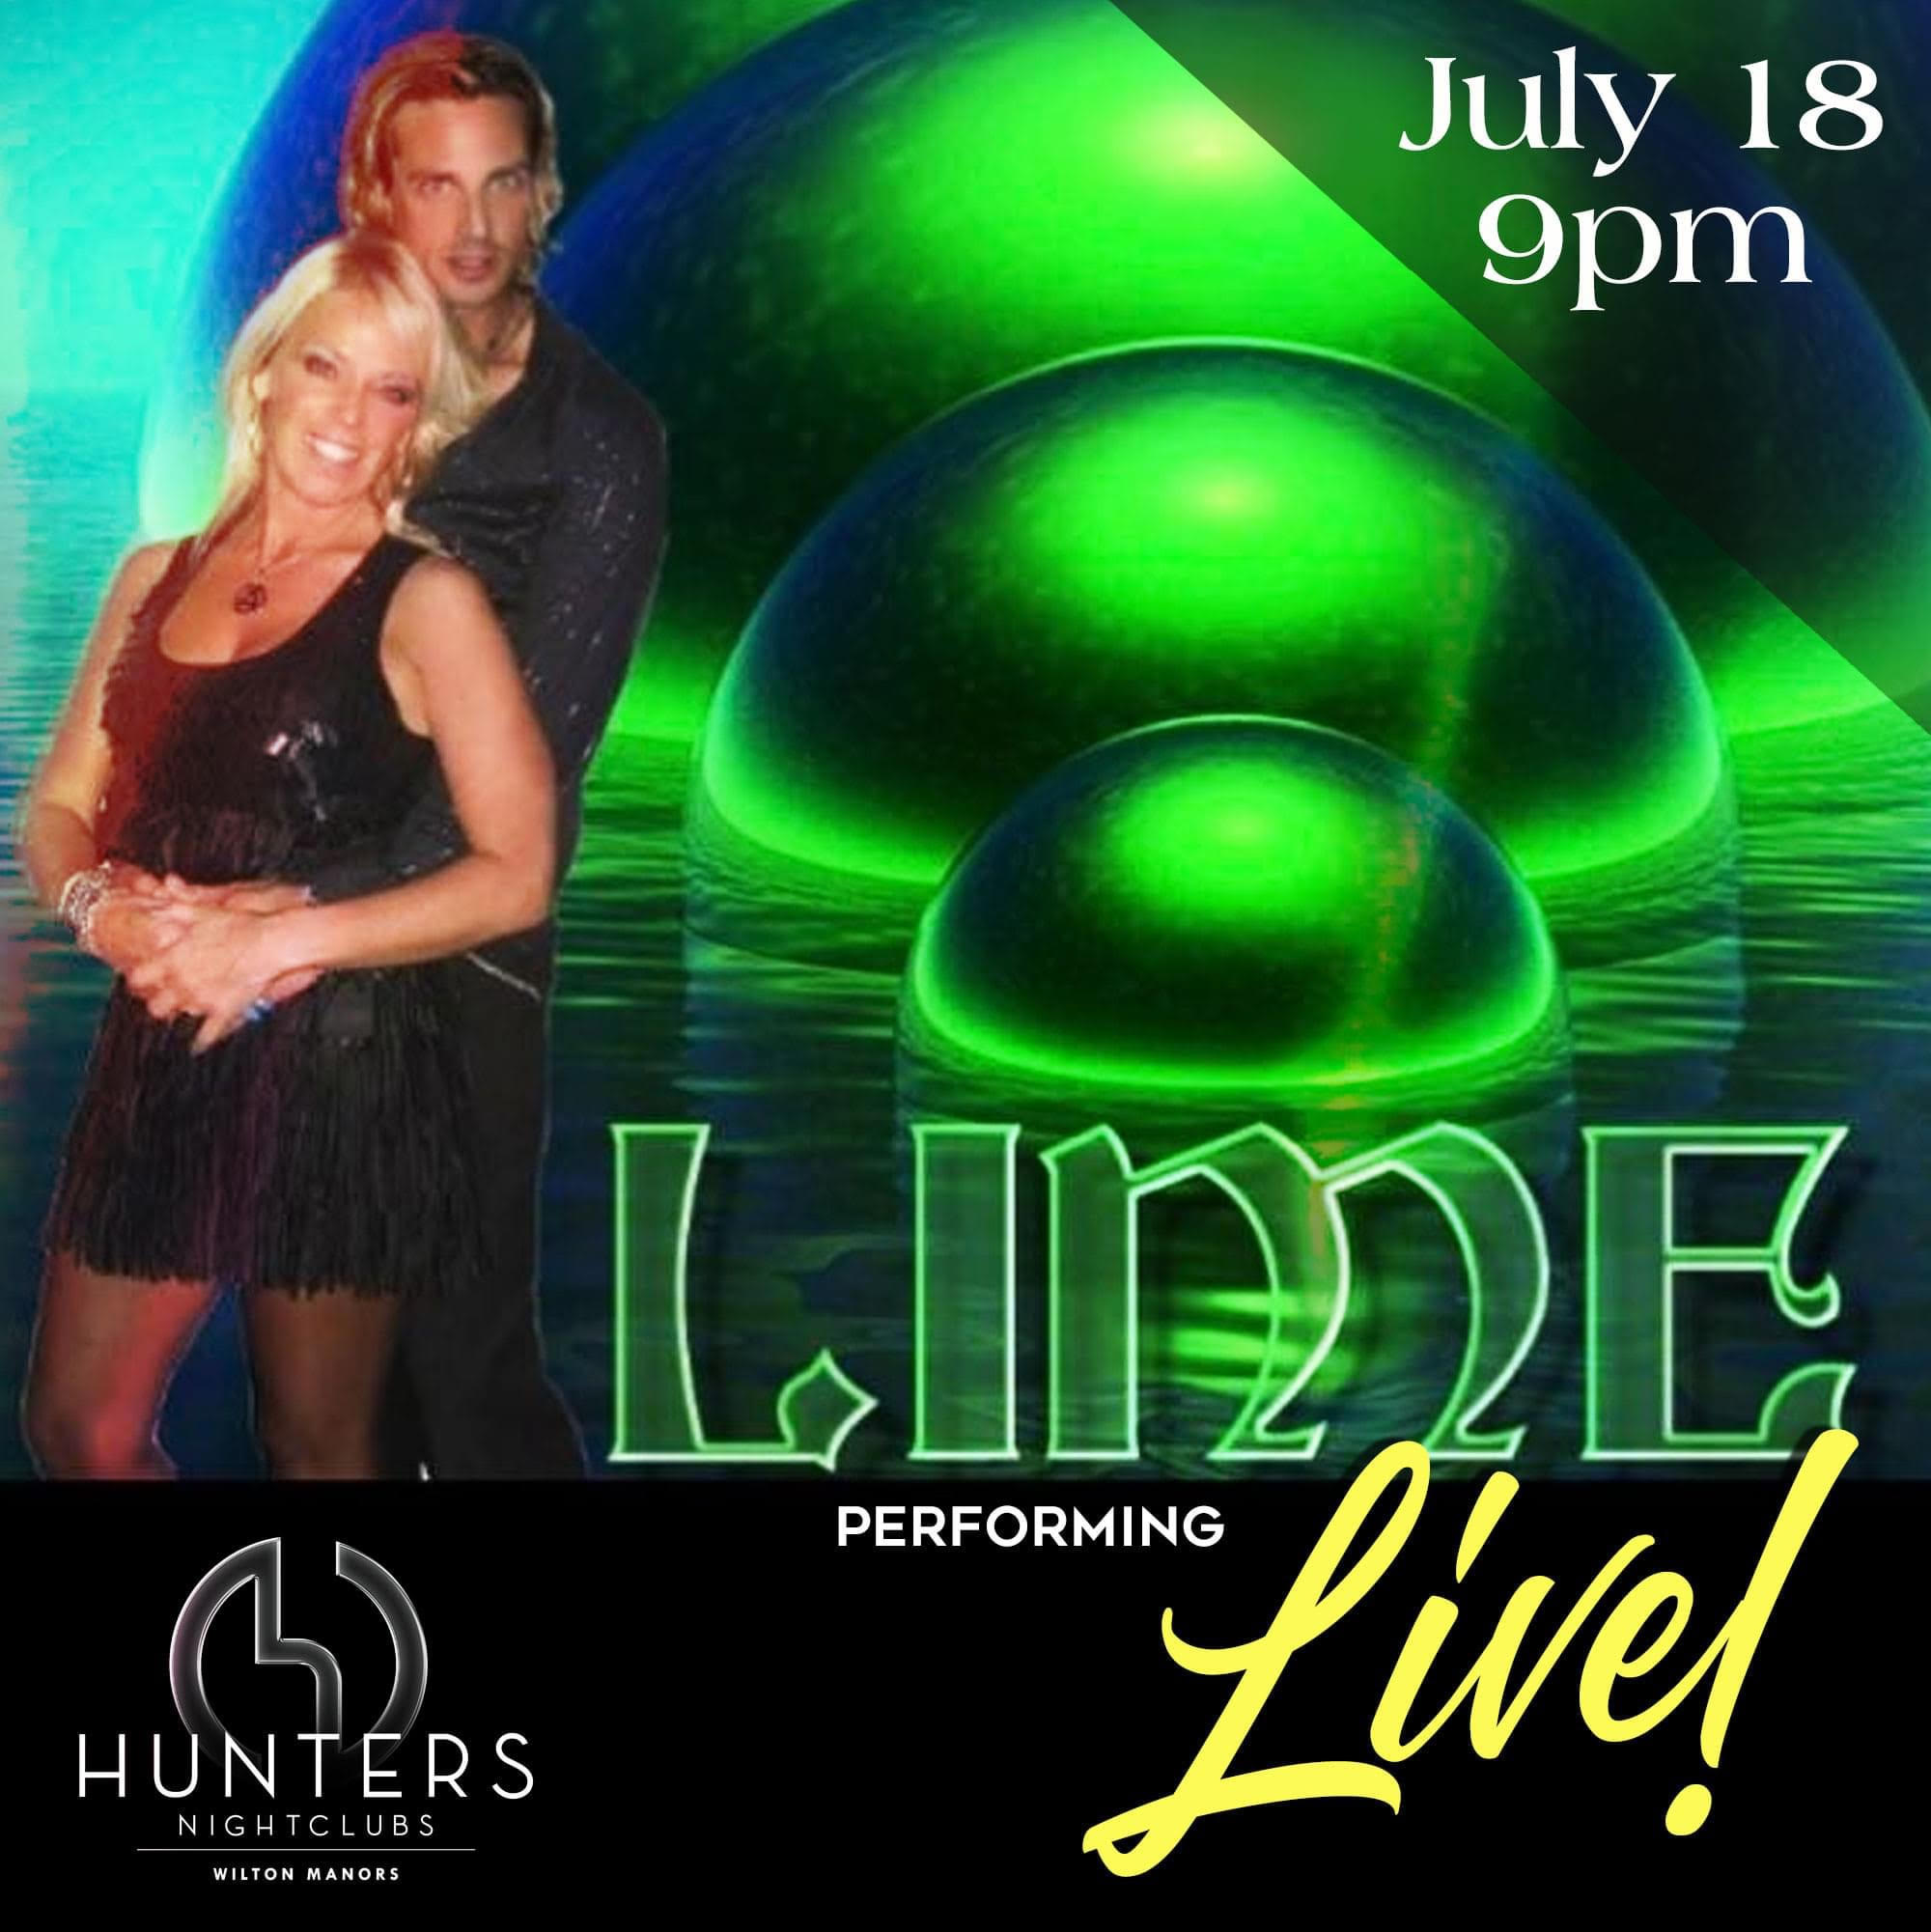 July 18 9 pm Lime Performing Live!